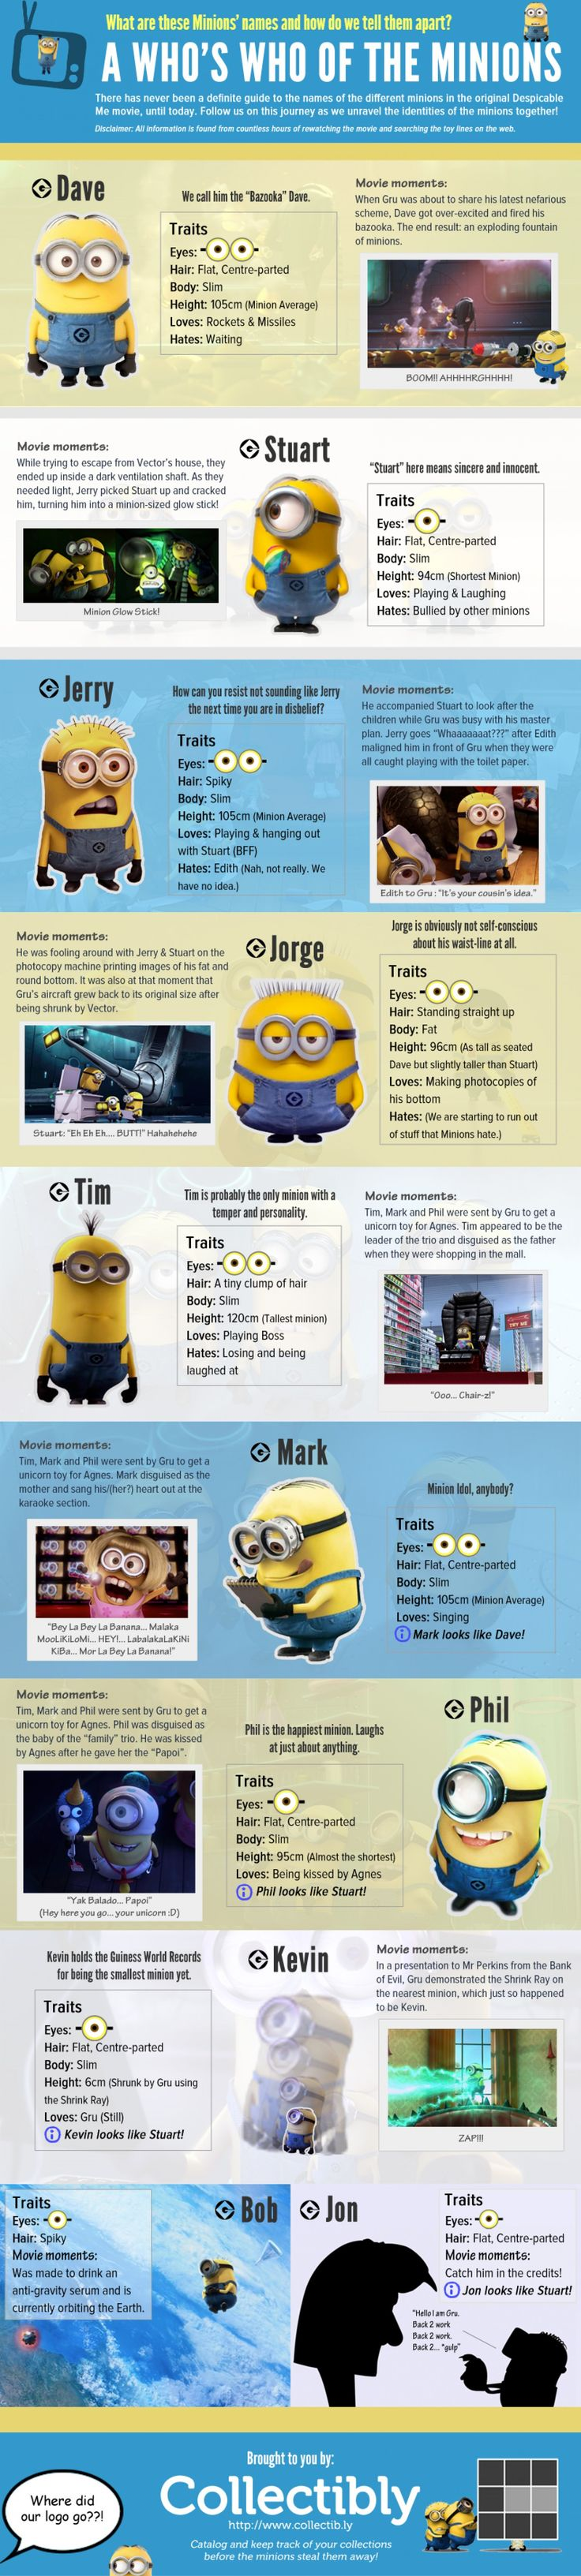 There has never been a definite guide to the names of the Minions in the original Despicable Me movie until today. This was a big project!